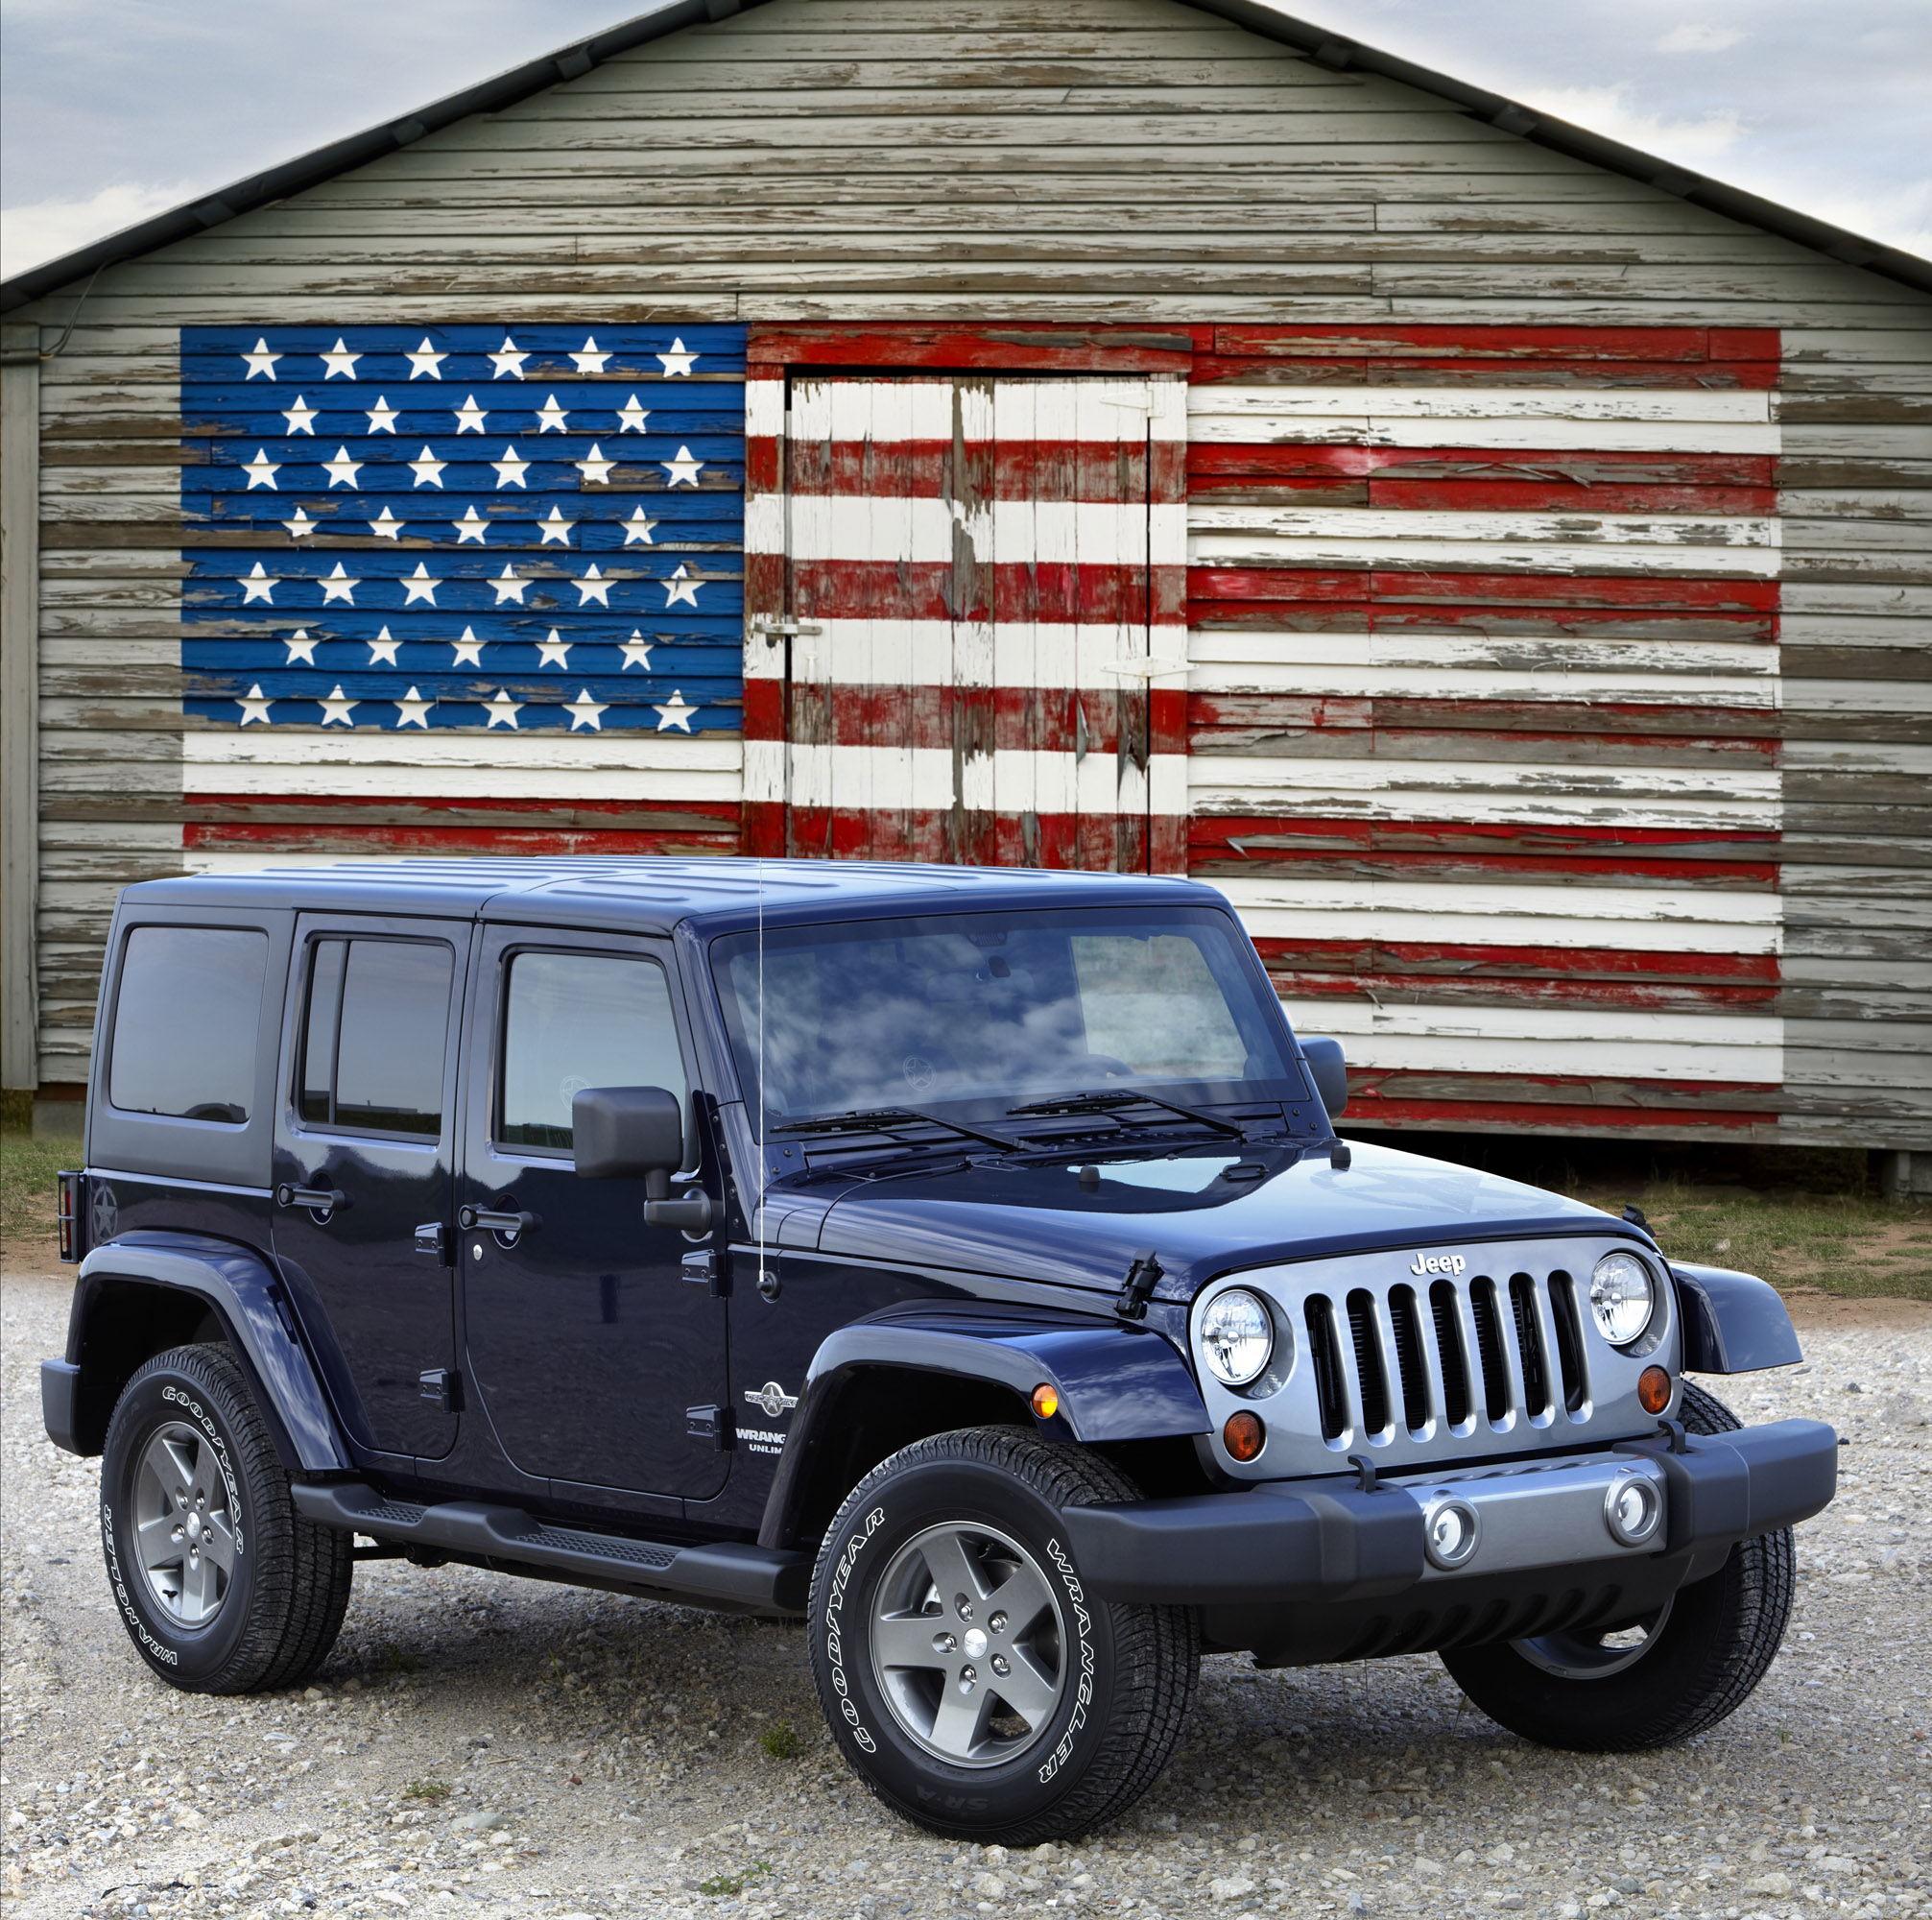 Jeep Wrangler Freedom Edition photo #1